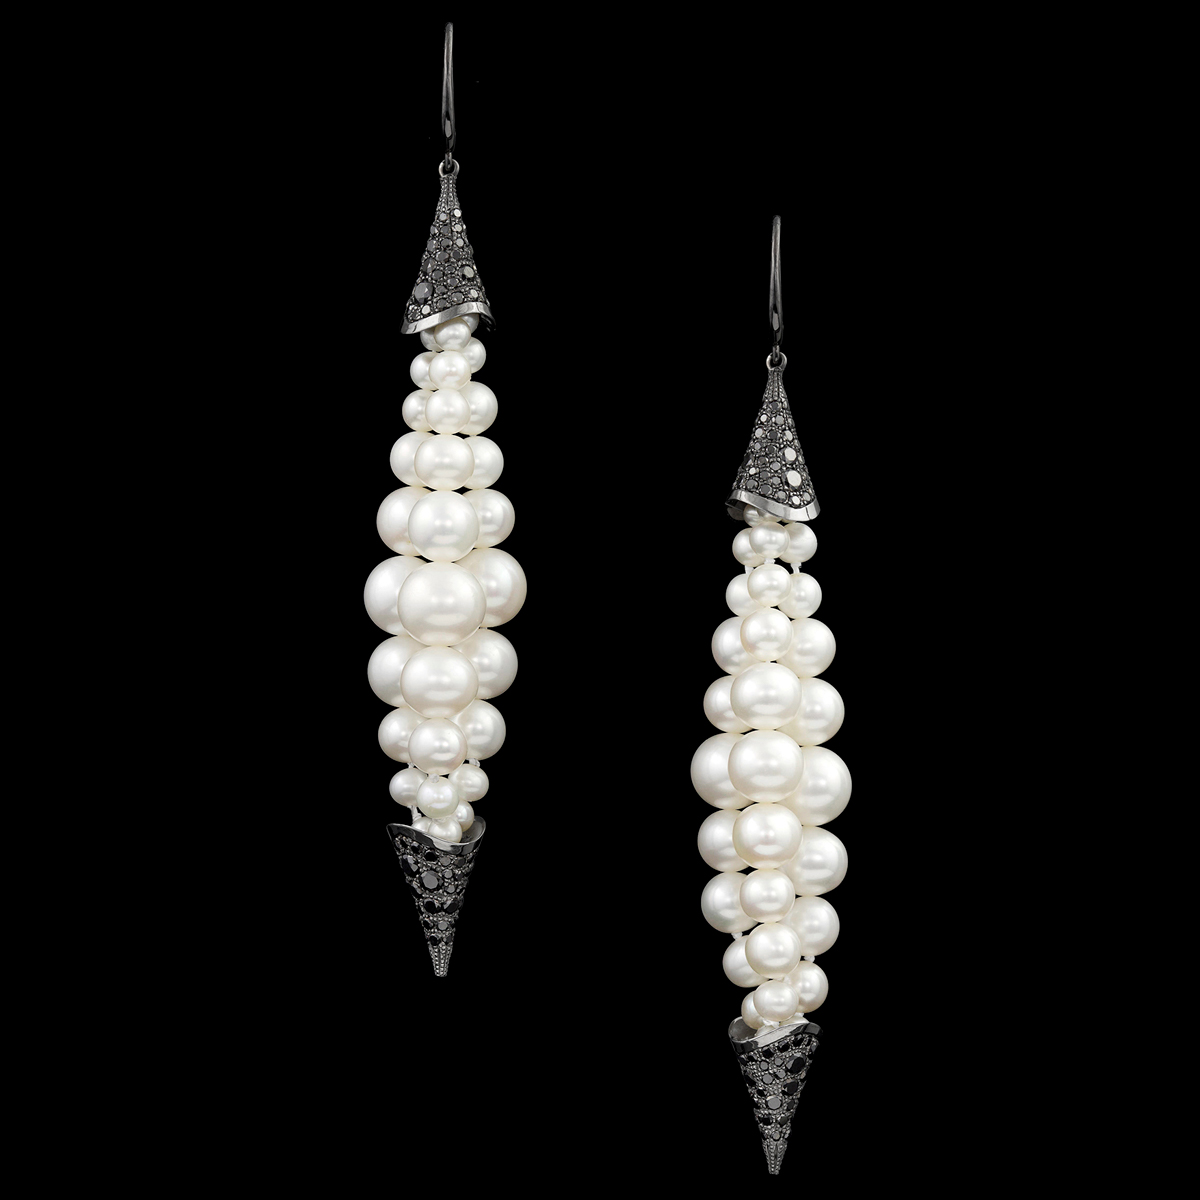 akoya pearl black diamond earrings sexy & dangerous